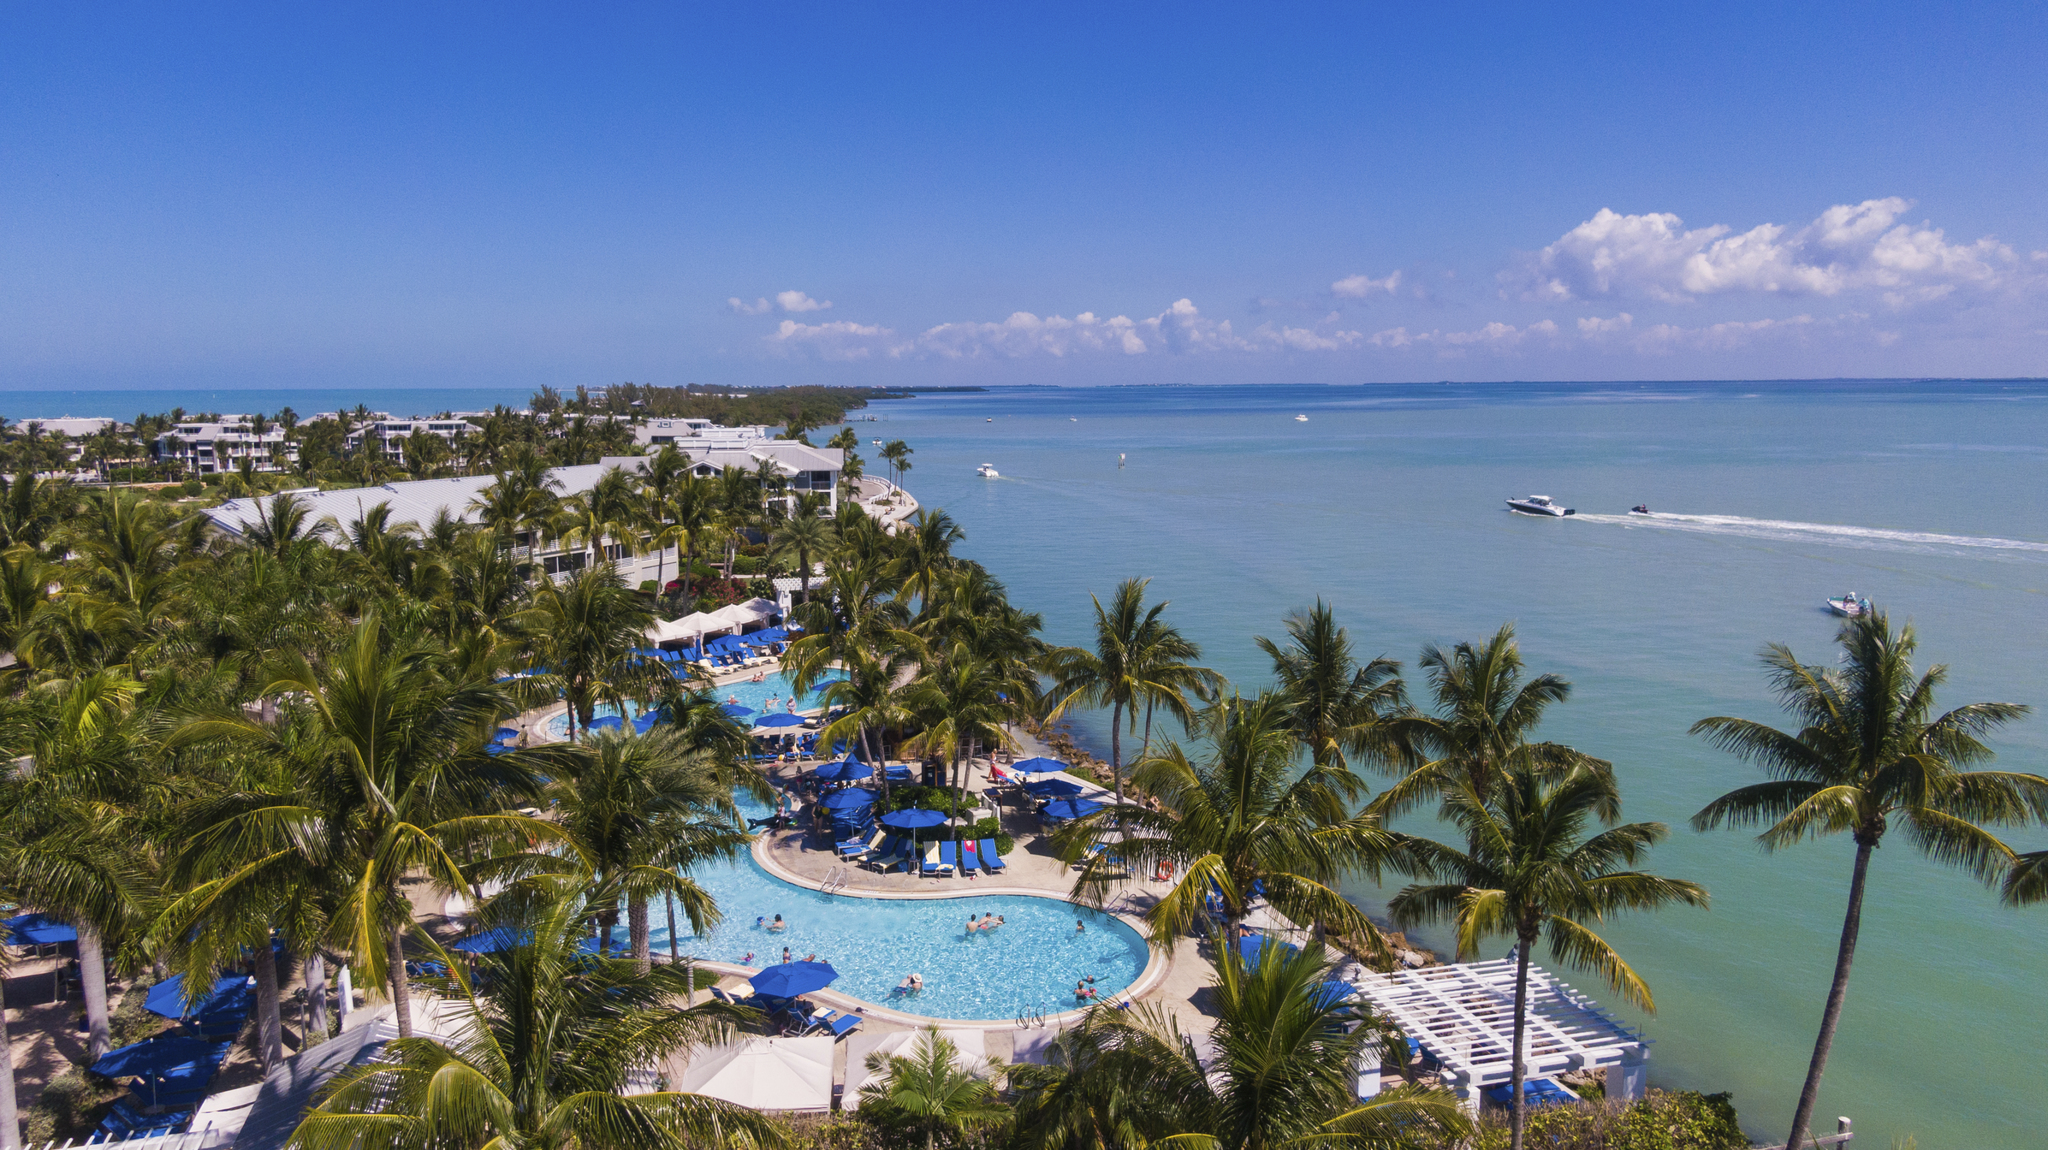 94.7 WLS Could Send You on a Florida Vacation!